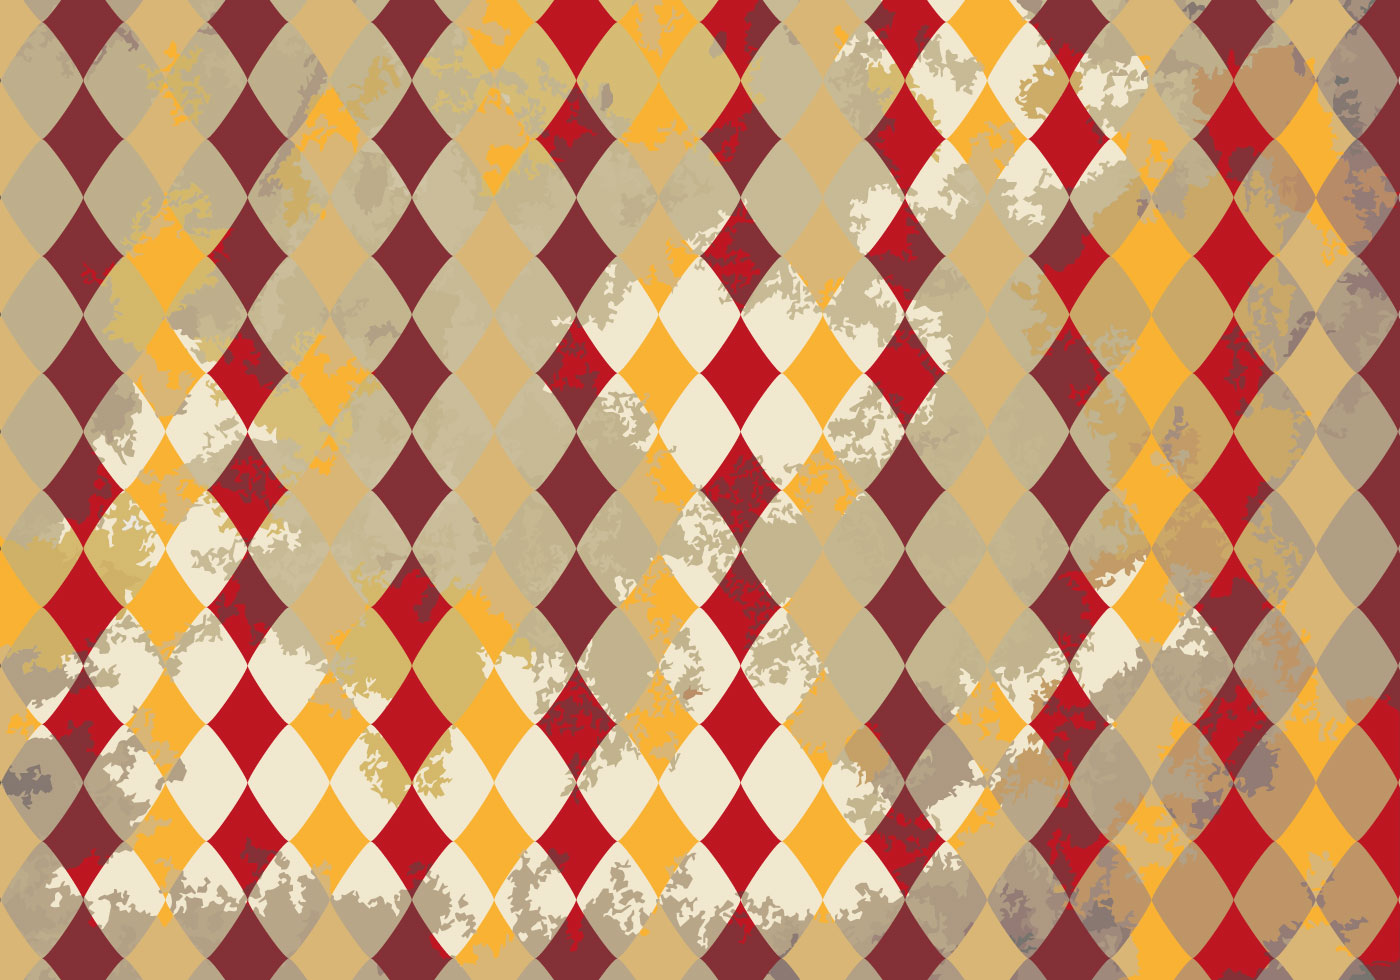 Free Circus Vintage Vector - Download Free Vector Art, Stock Graphics & Images